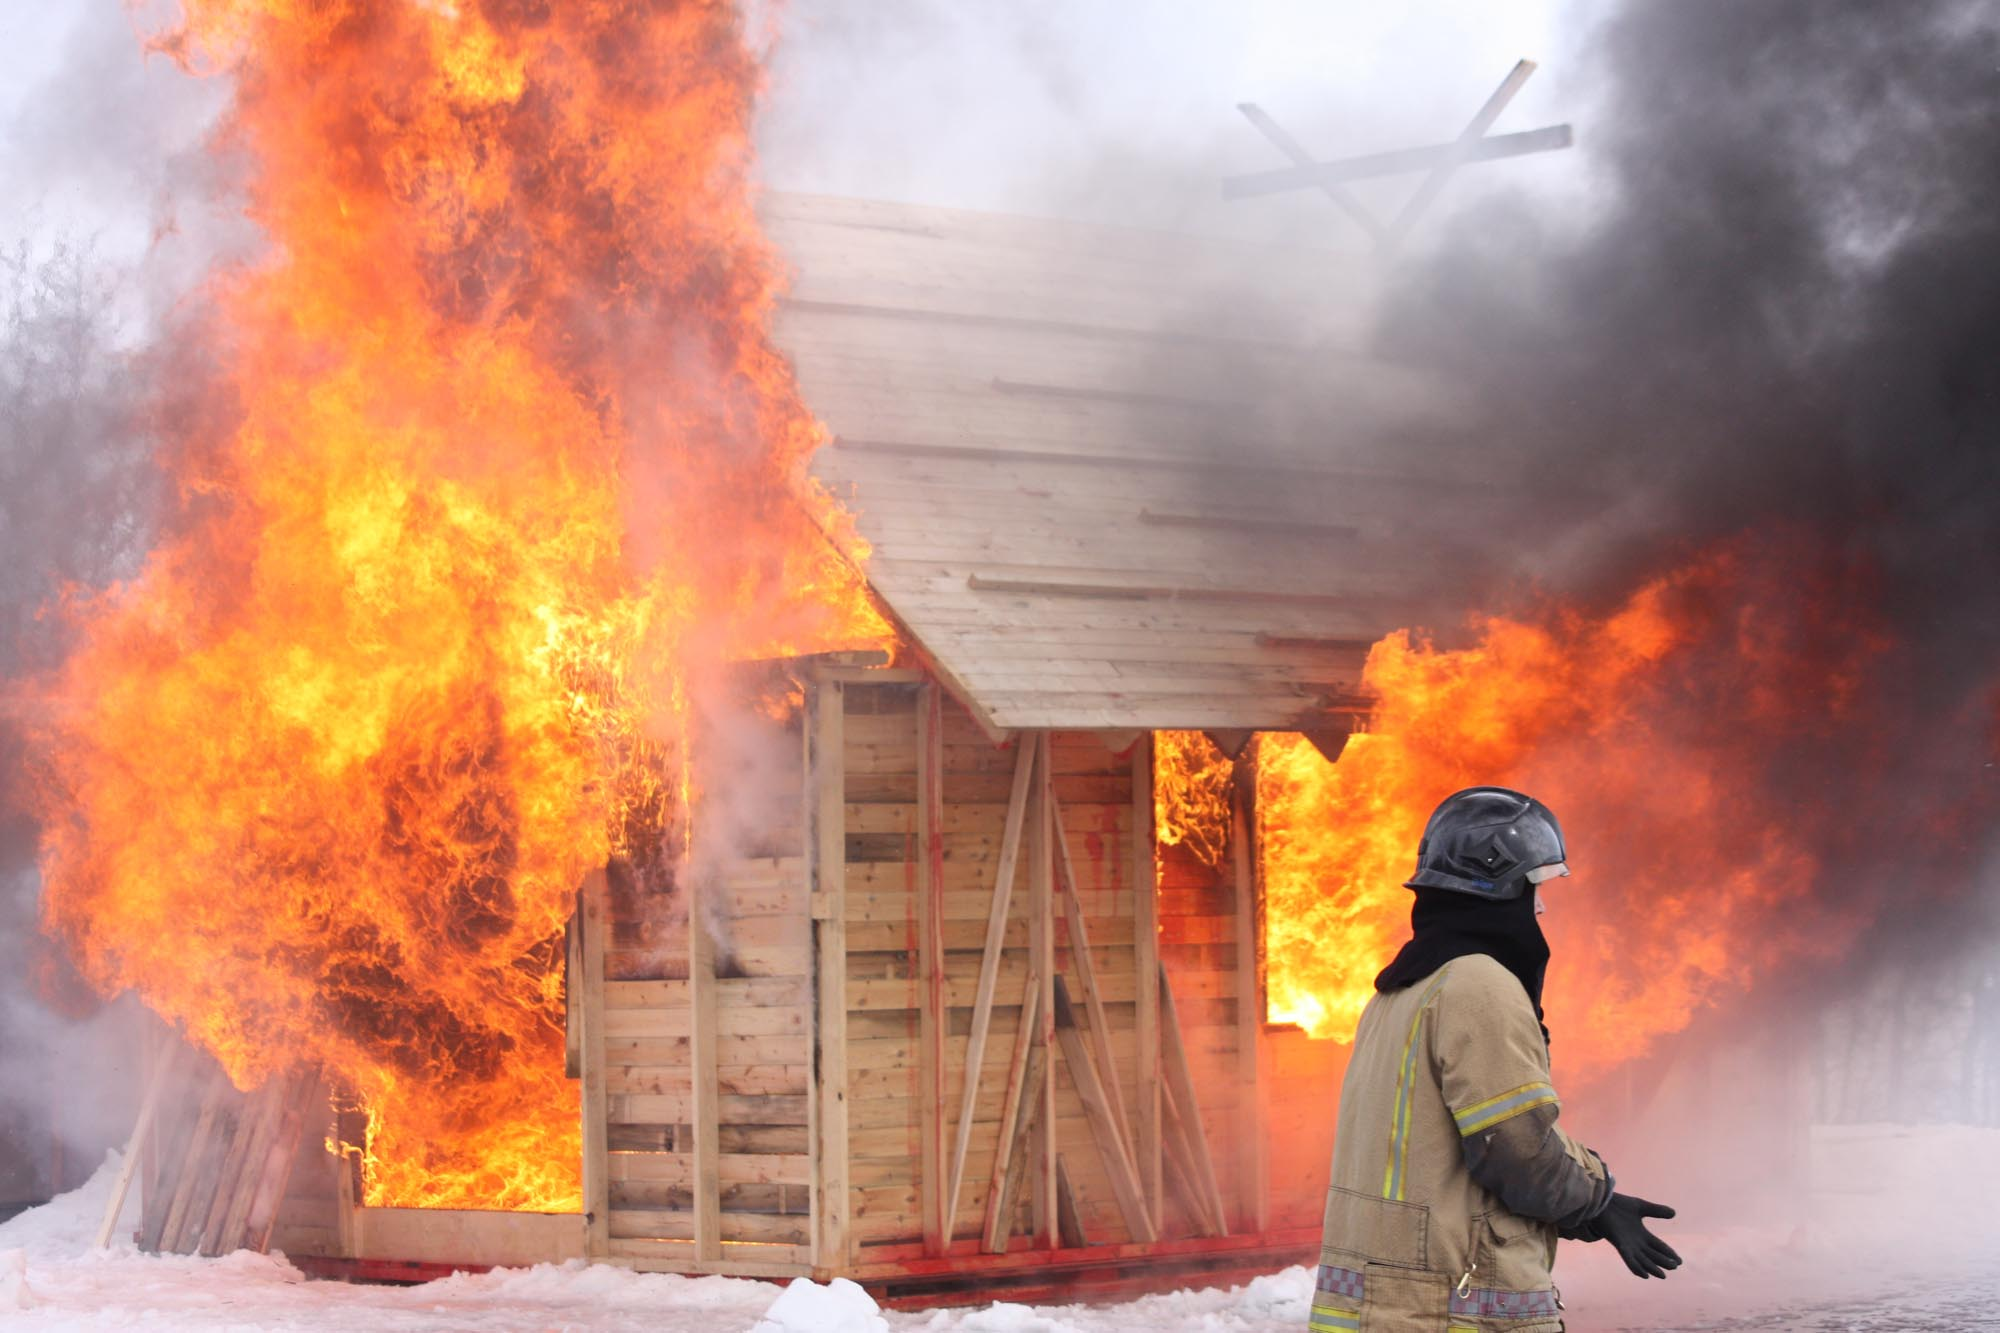 A wooden hut in flames